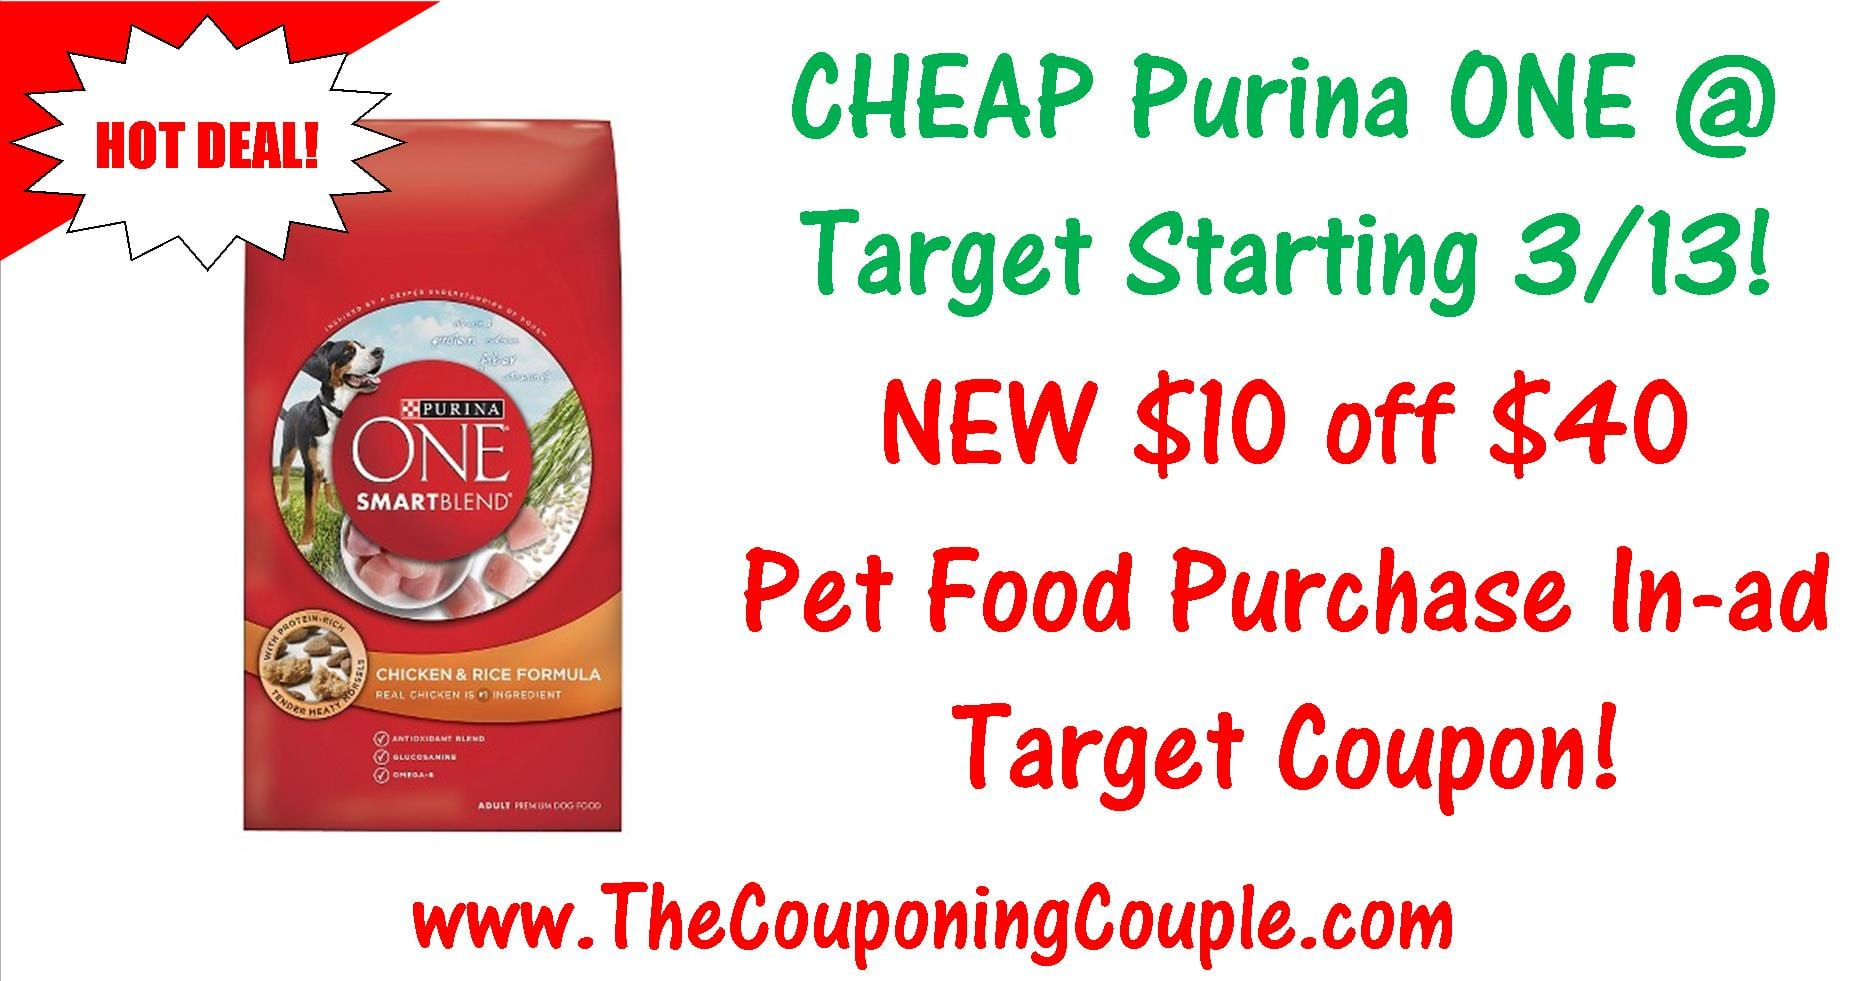 Old coupons Among Costco Warehouse Coupon offers you can find a discount coupon for $ off any Purina Fancy Feast Cat food variety pack (expired).